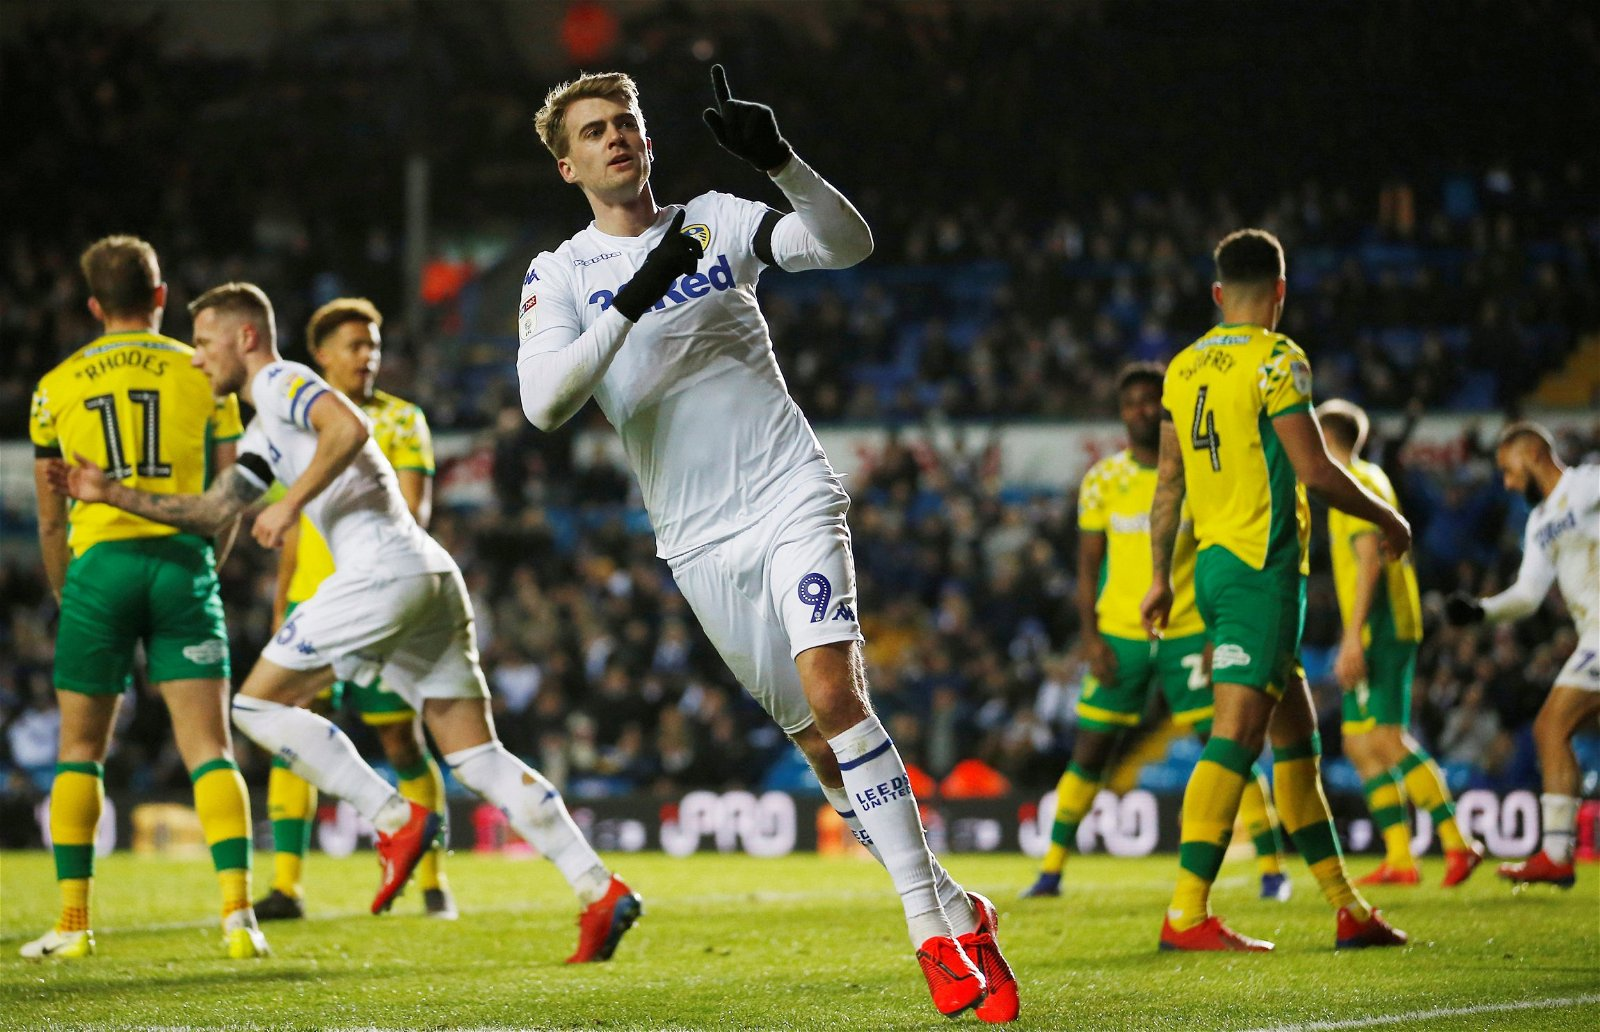 Norwich City vs Leeds United Patrick Bamford - Feature: Huge decision could lie ahead for Bielsa even if Leeds' 6-goal ace becomes an ER hero